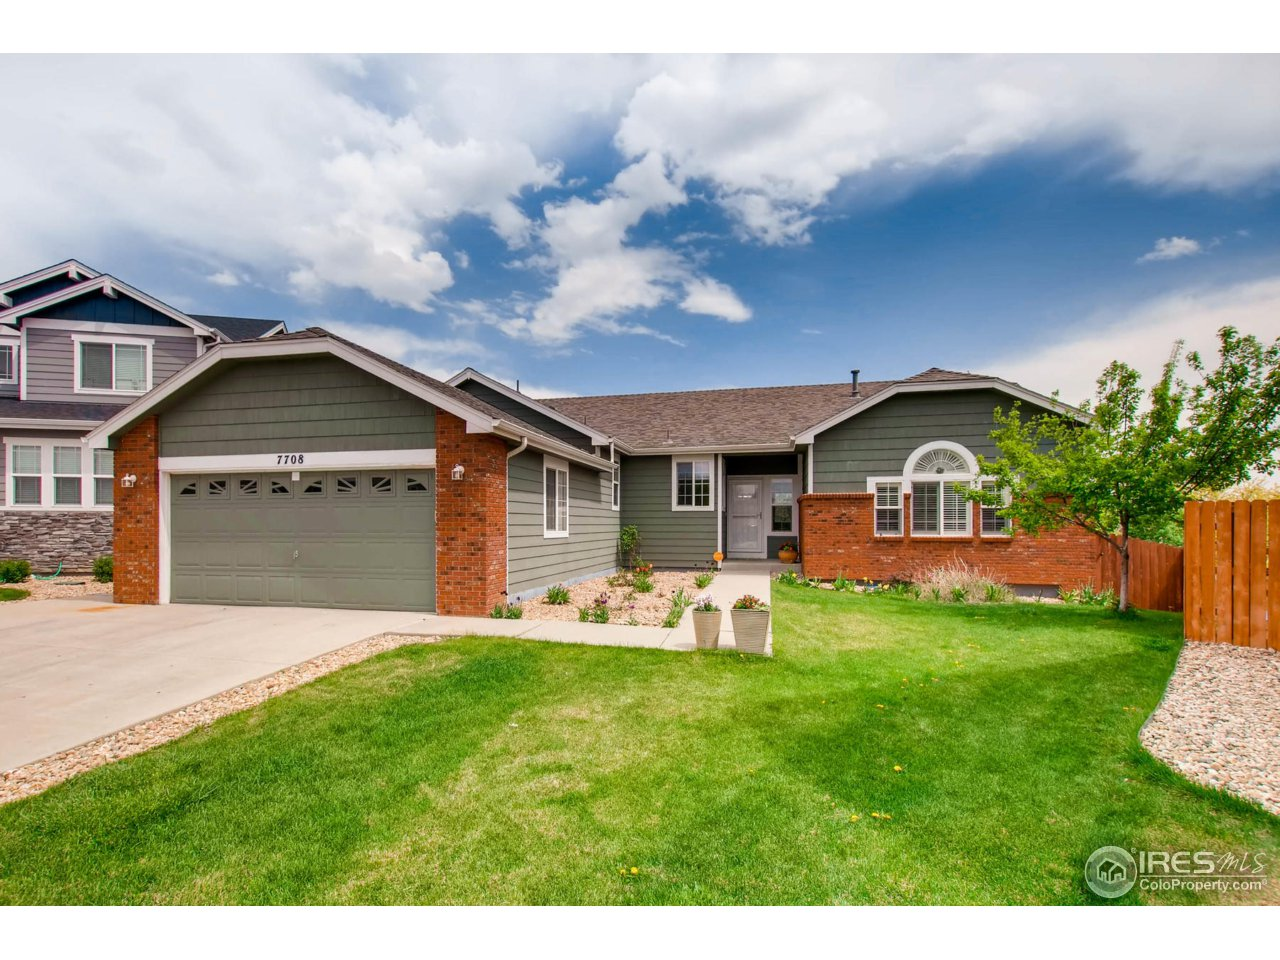 7708 W 11th St Rd, Greeley CO 80634